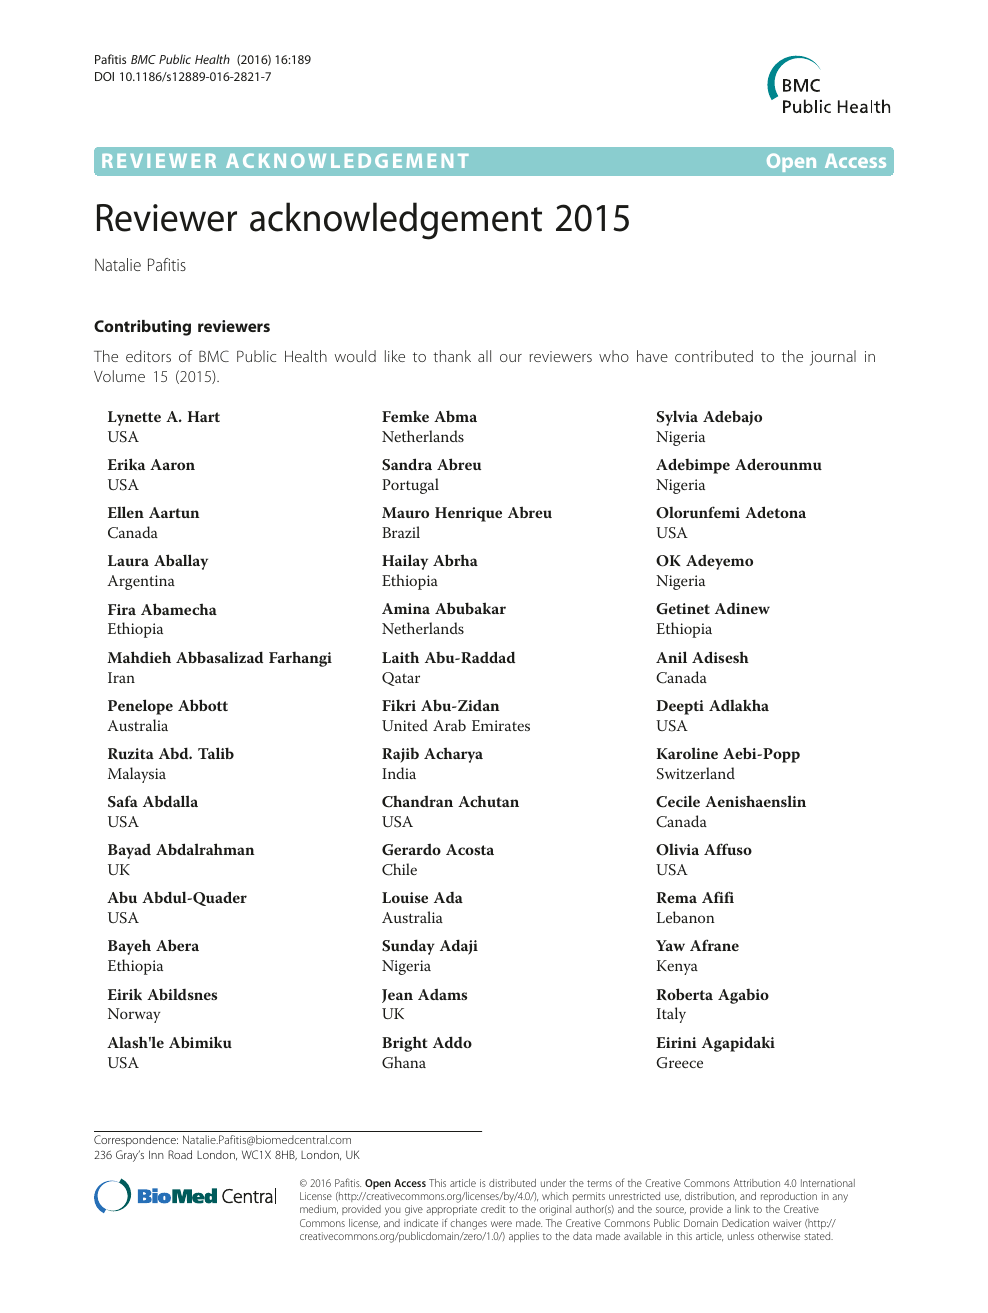 Reviewer acknowledgement 2015 – topic of research paper in